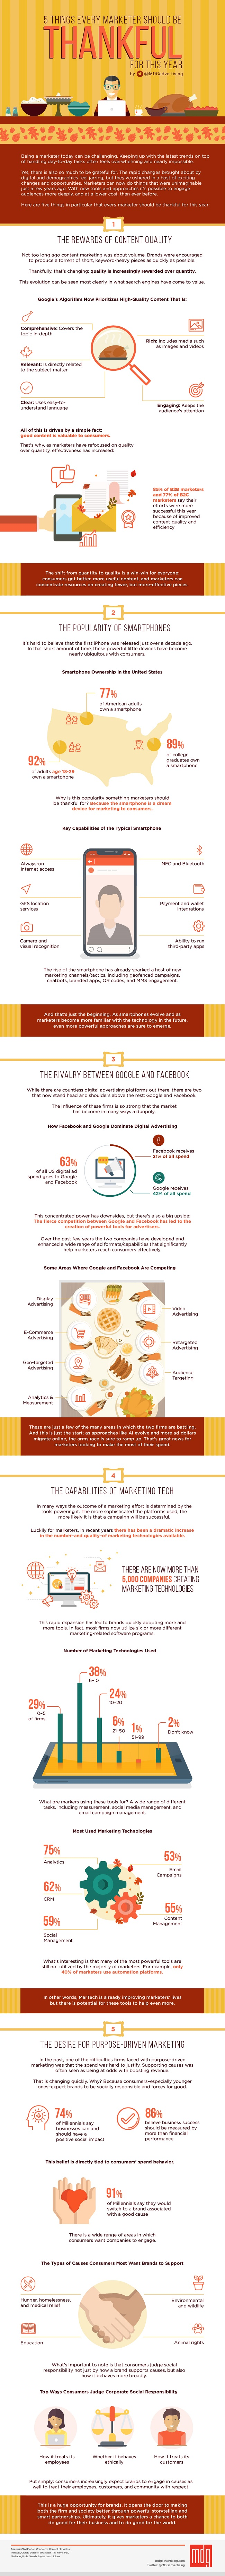 5 Things Every Marketer Should Be Thankful for This Year [Infographic] | Social Media Today